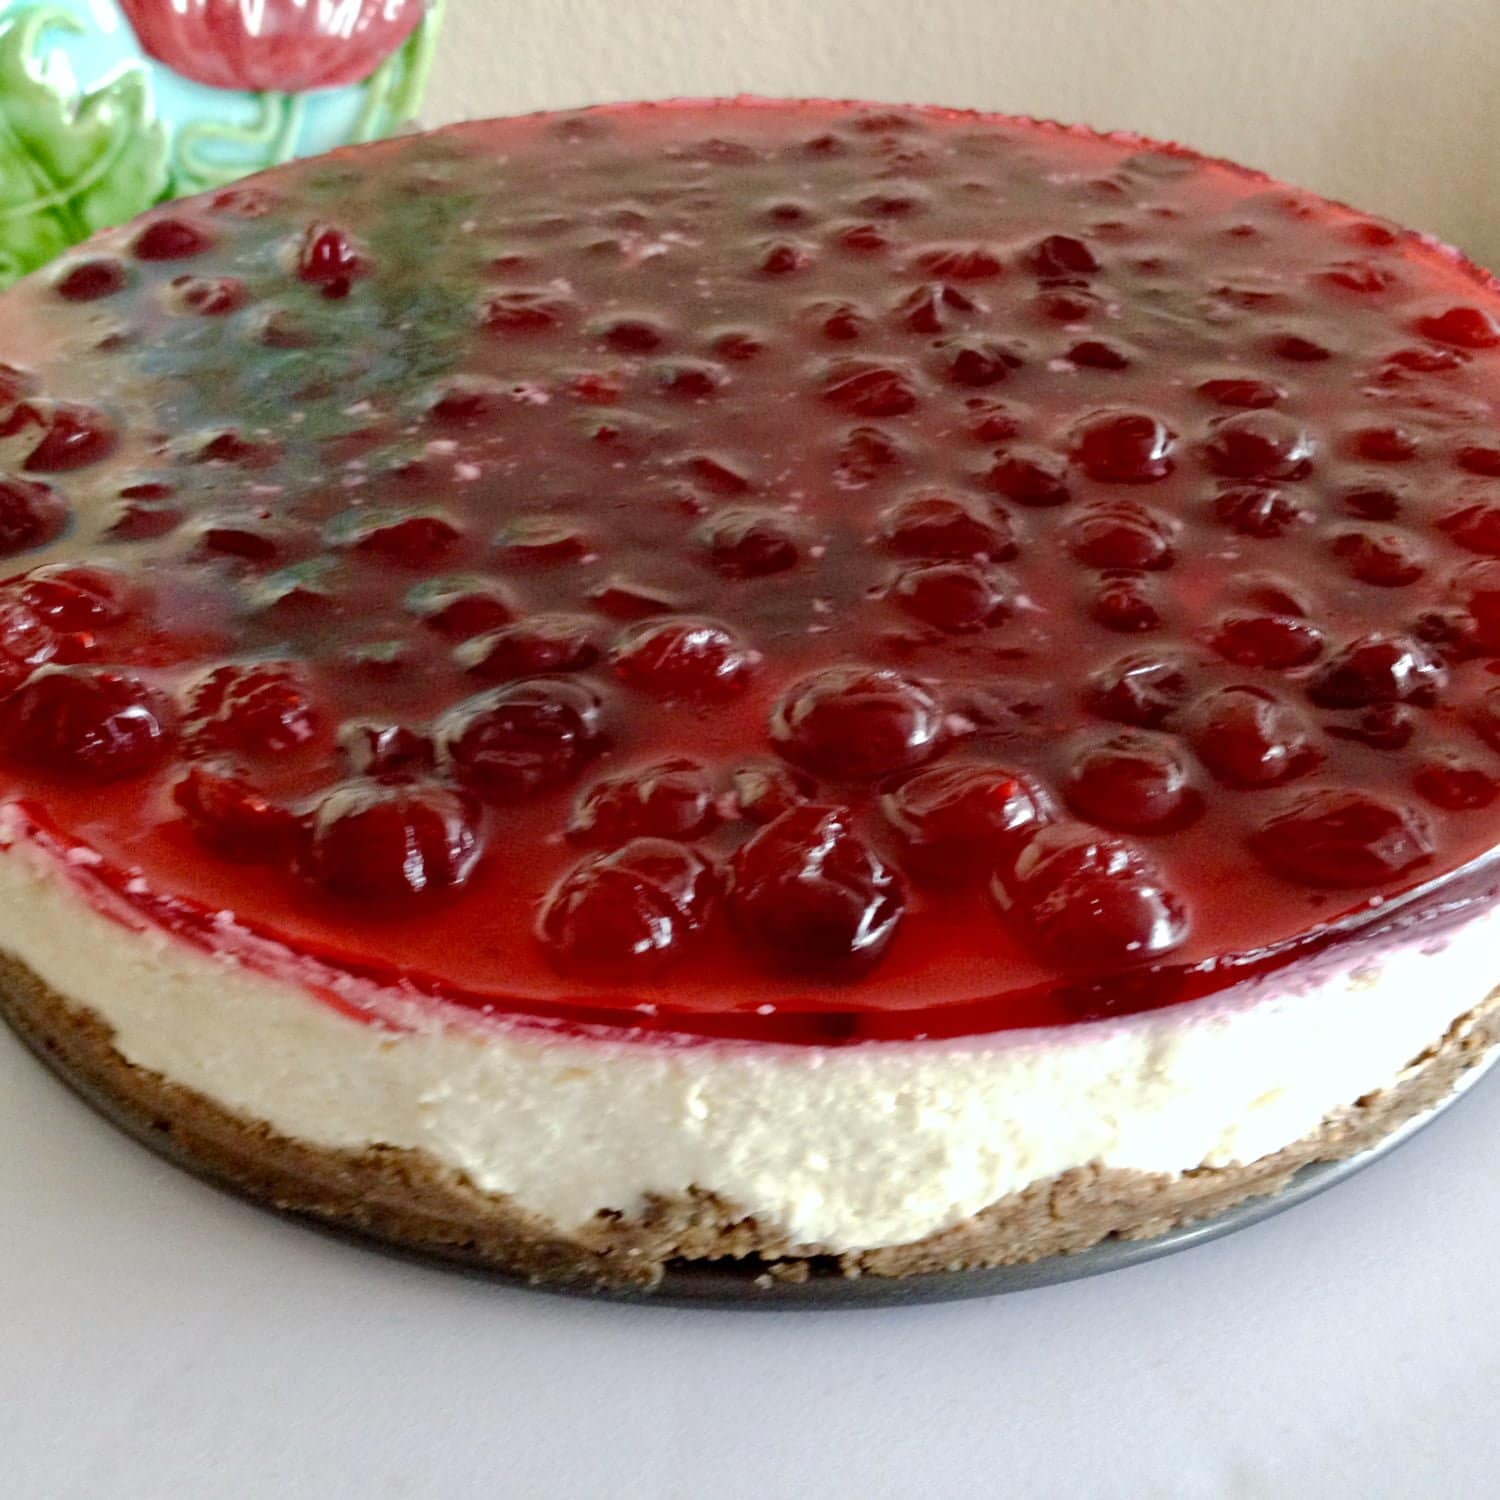 This No Bake Cheesecake with berries is a wonderful recipe suited for all kinds of events all year long. Quick dessert, made in no time. Enjoy!